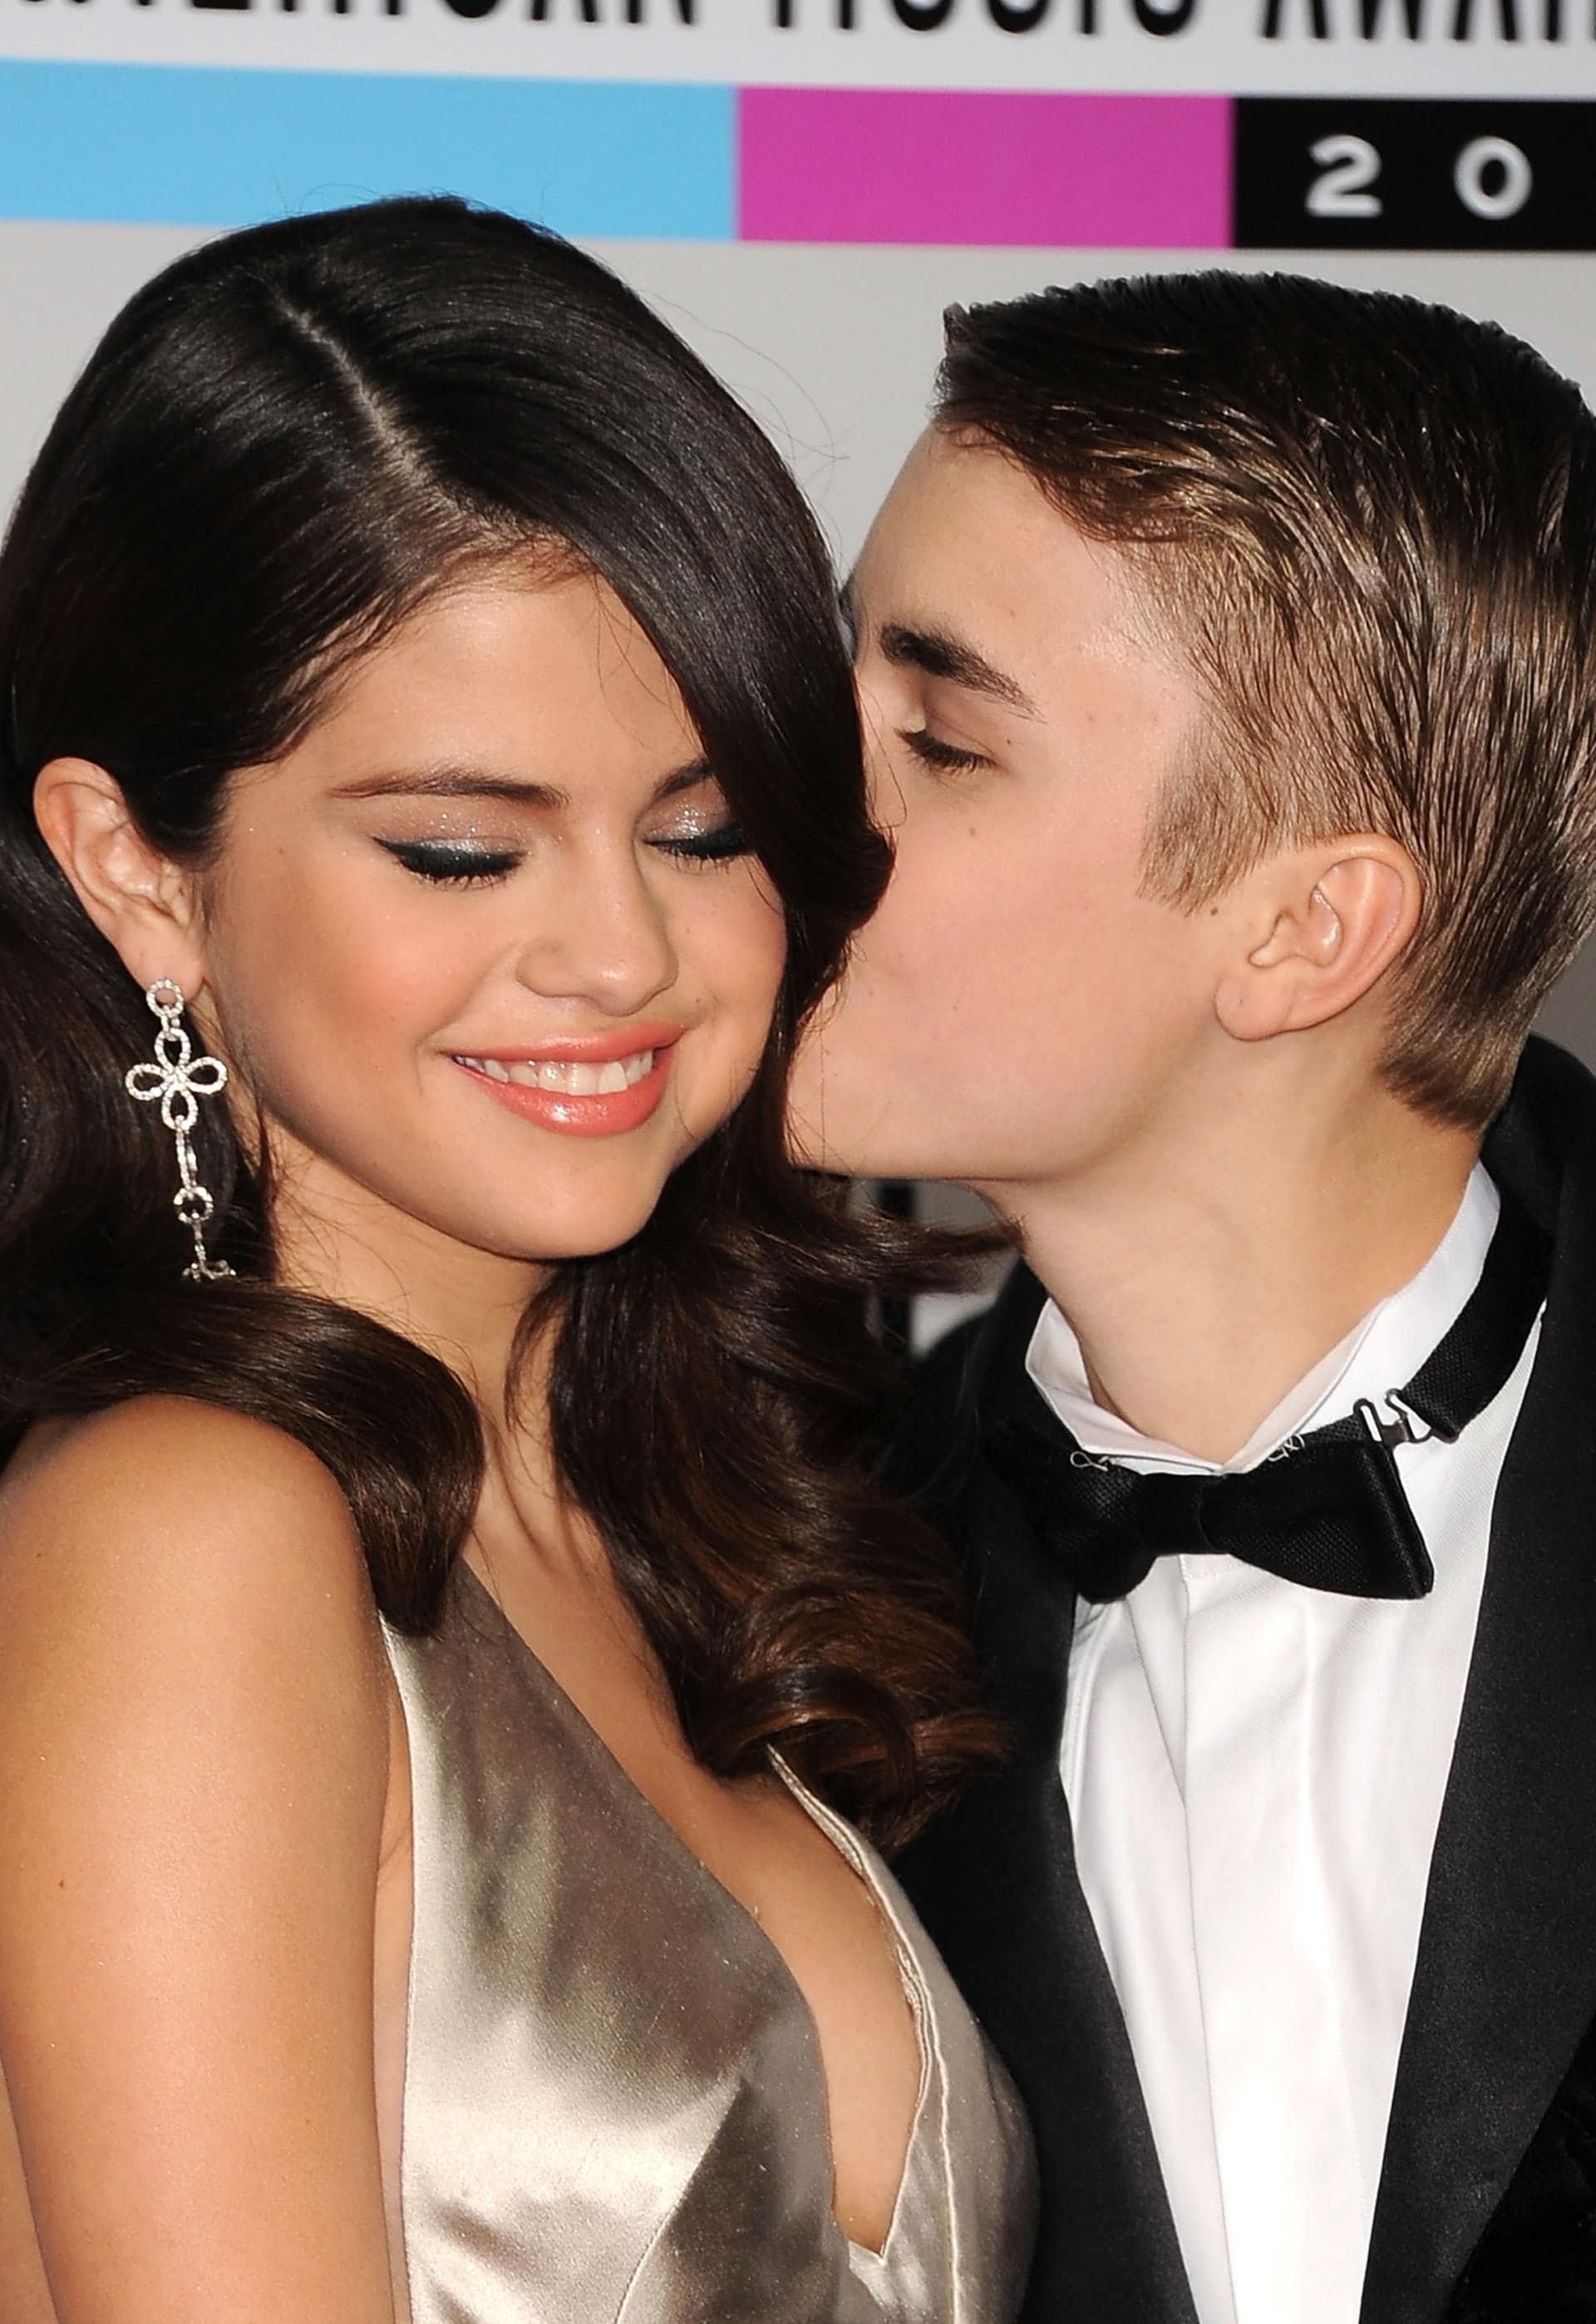 Justin bieber and selena gomez kissing in the bathroom